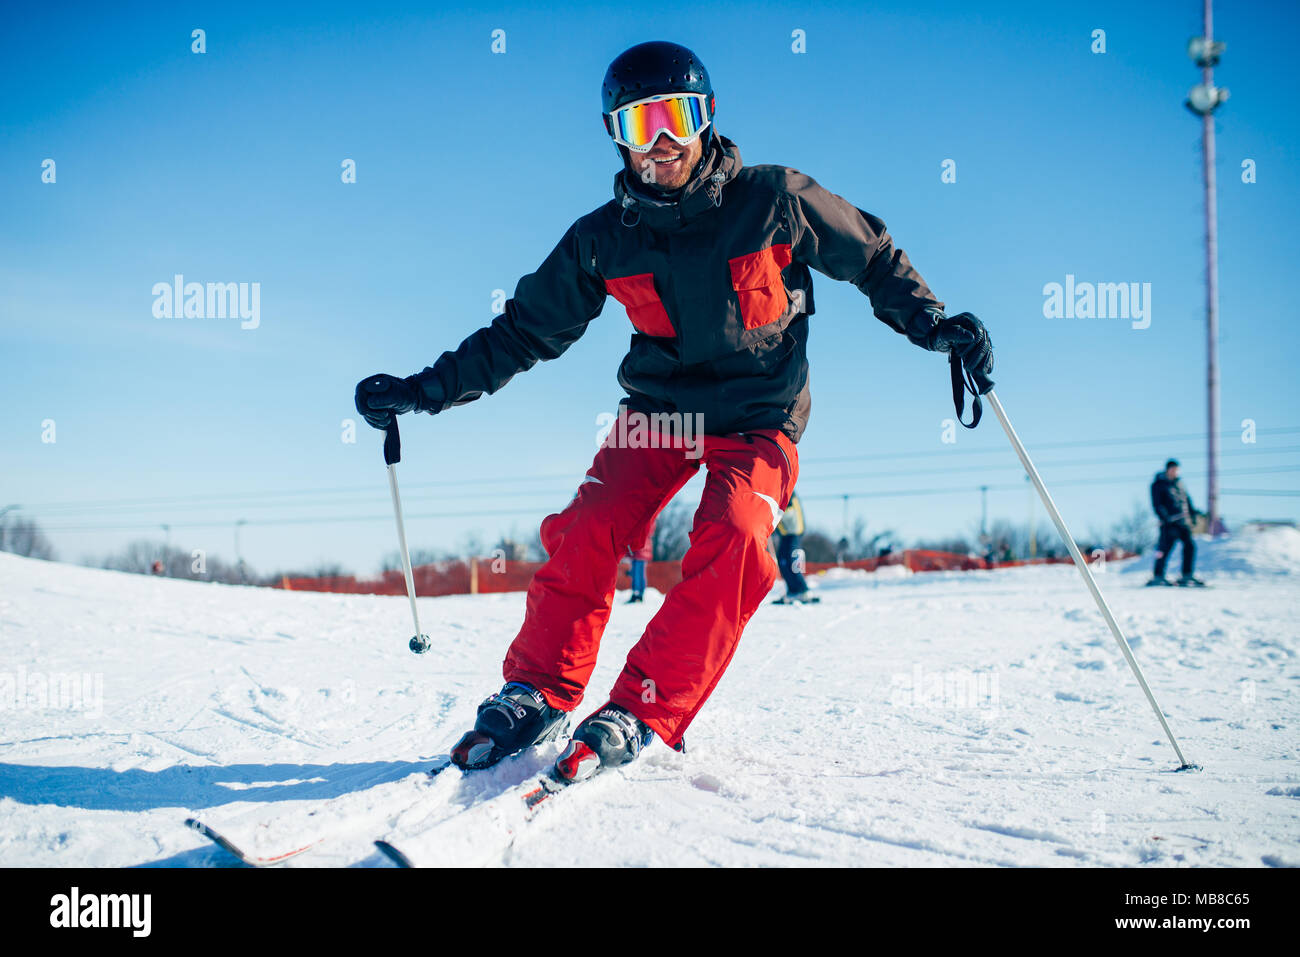 Skier in helmet and glasses riding from speed slope, front view. Winter active sport, extreme lifestyle. Downhill skiing - Stock Image